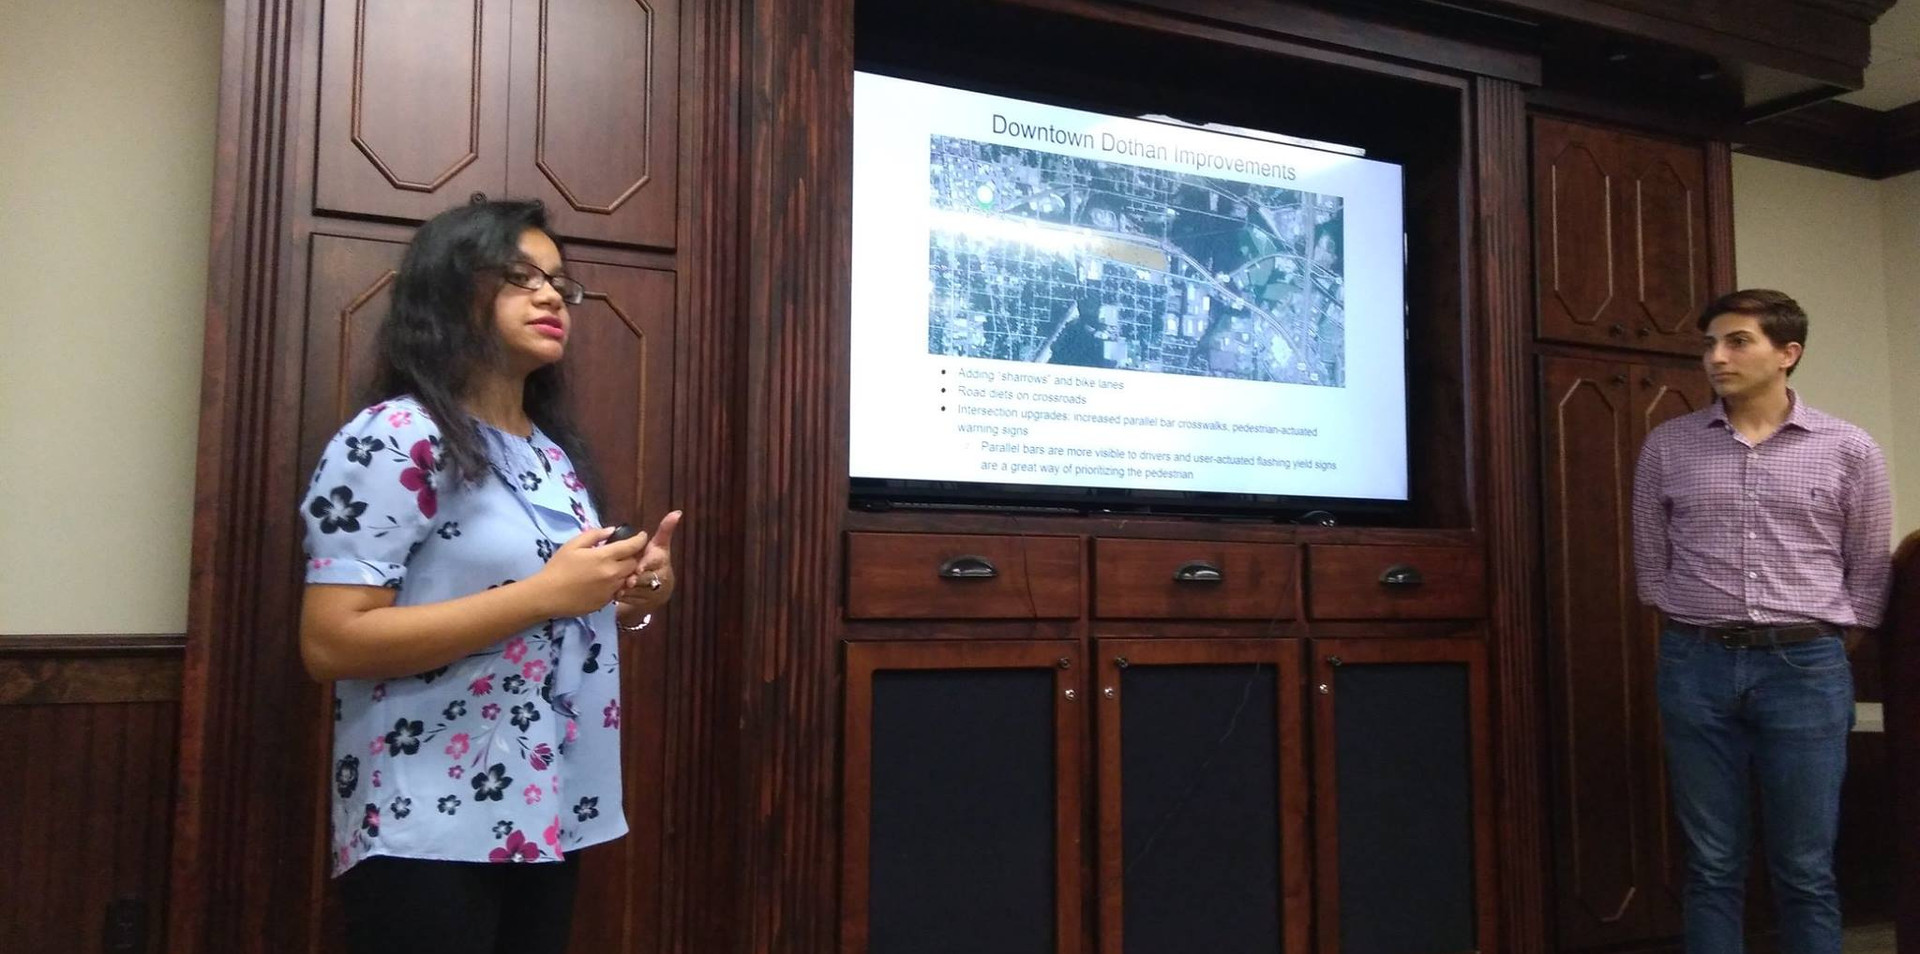 Presentation in the City Hall